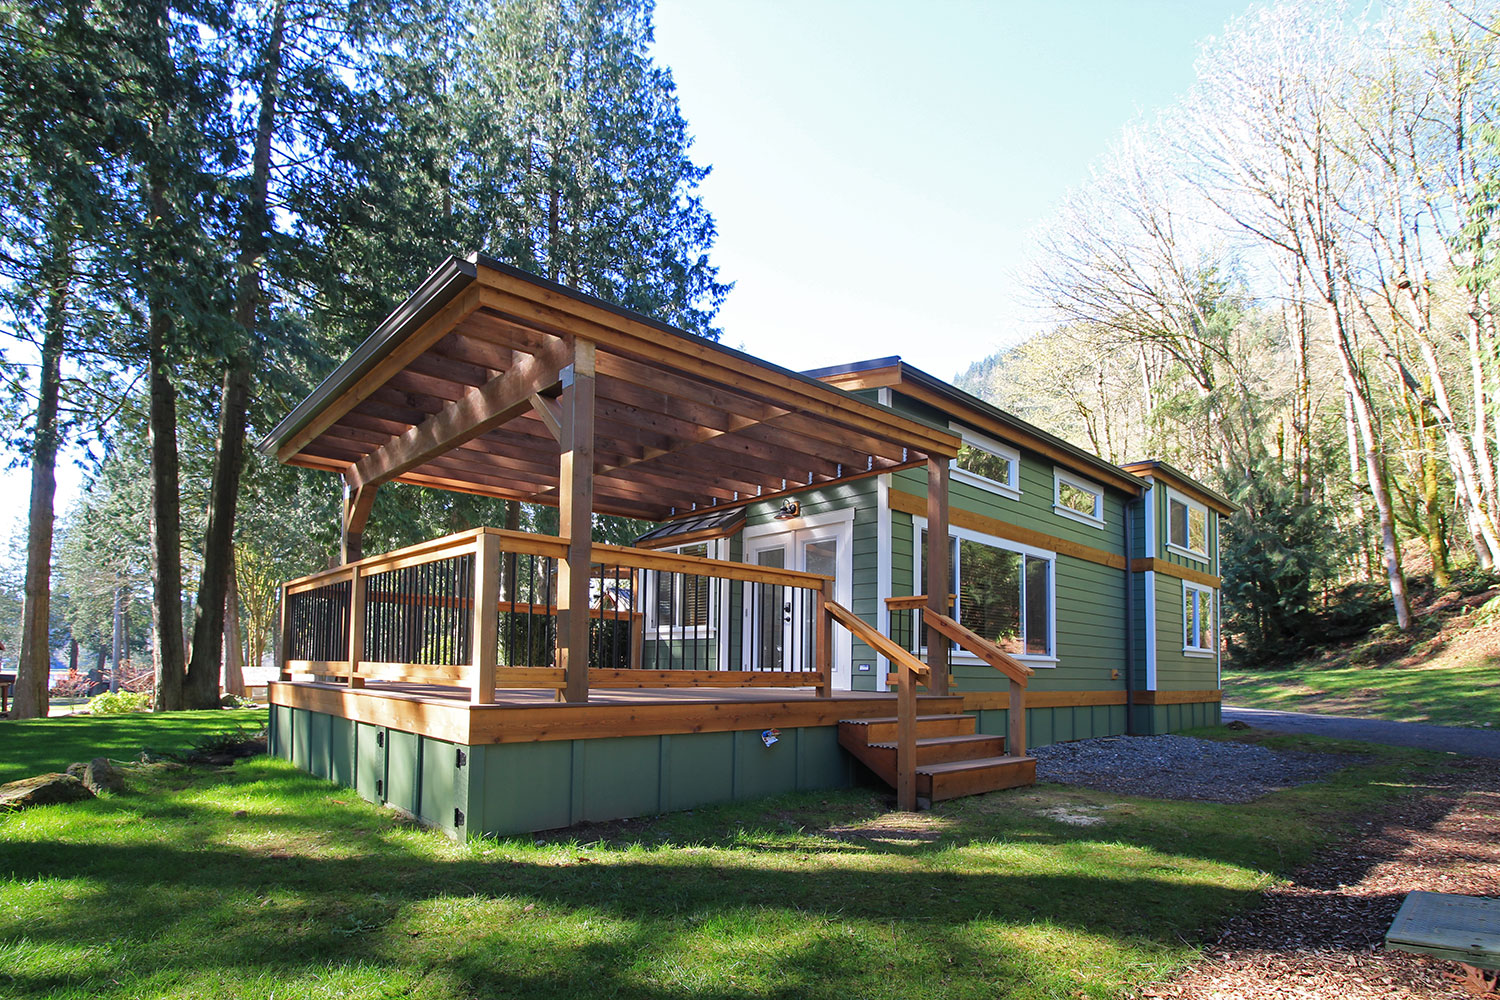 Whidbey Park Model Tiny Home Exterior